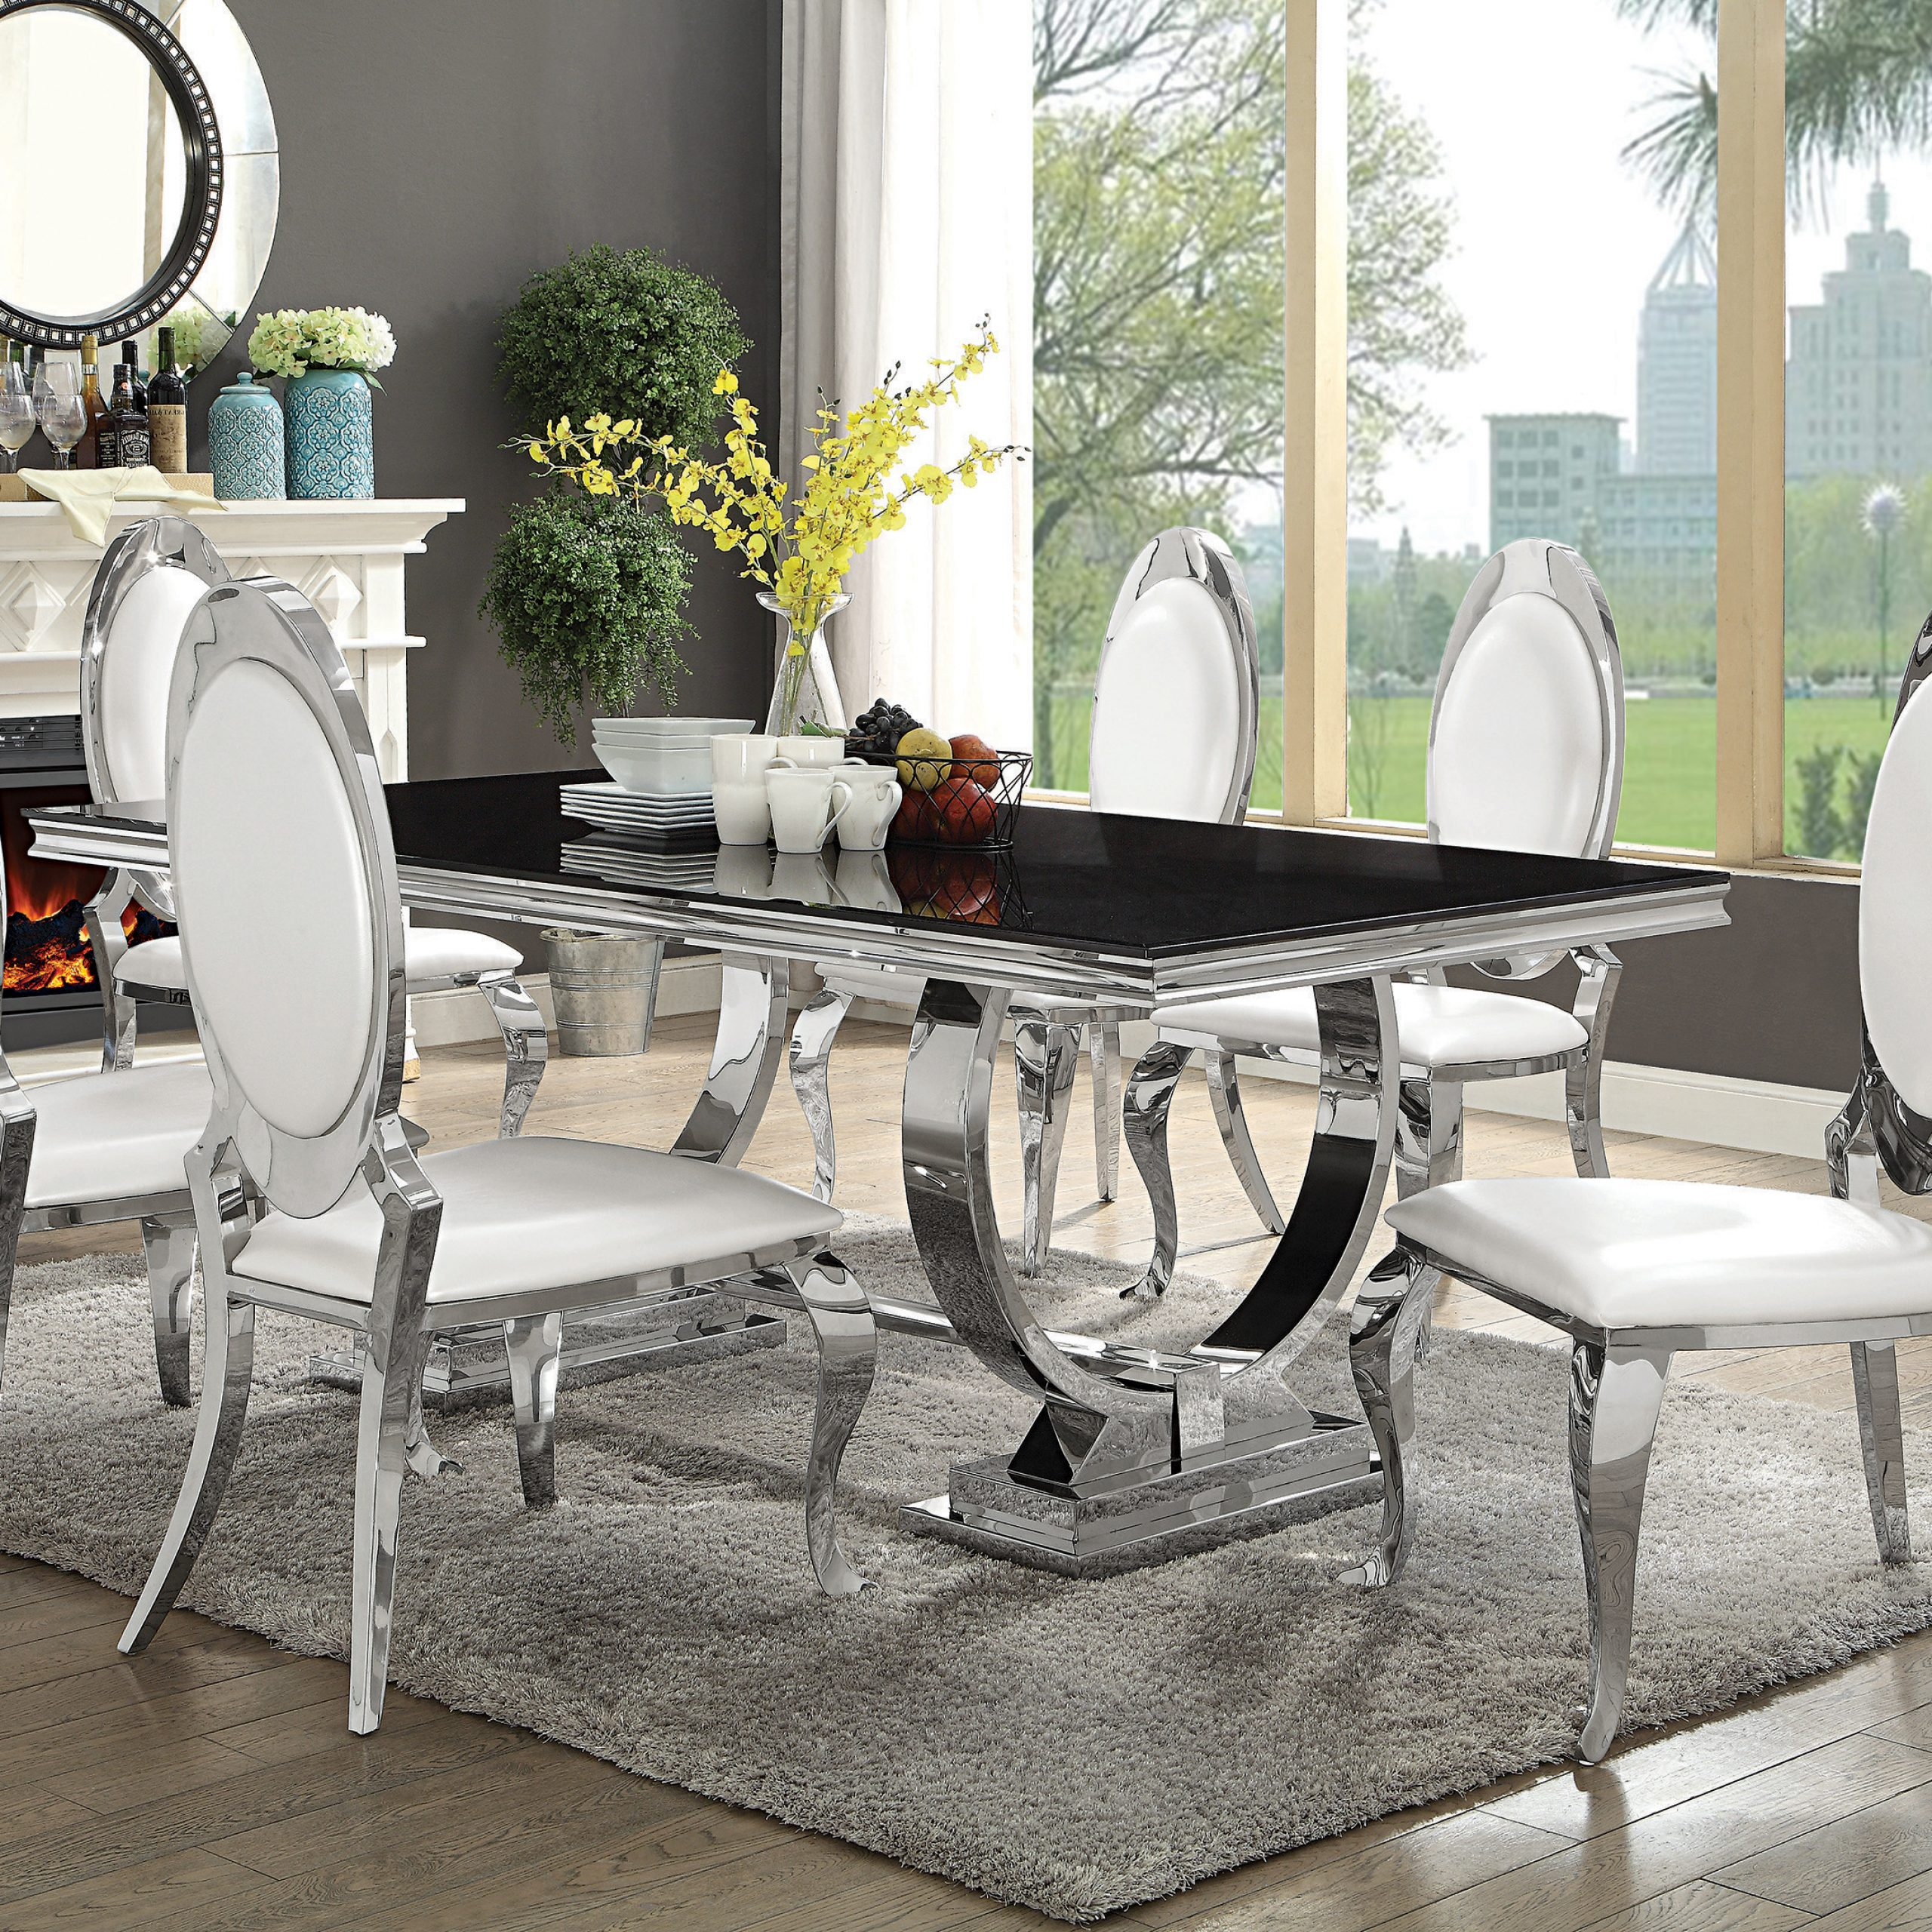 Long Dining Tables With Polished Black Stainless Steel Base For Most Current Antoine Rectangular Dining Table Chrome And Black – Coaster (View 19 of 25)